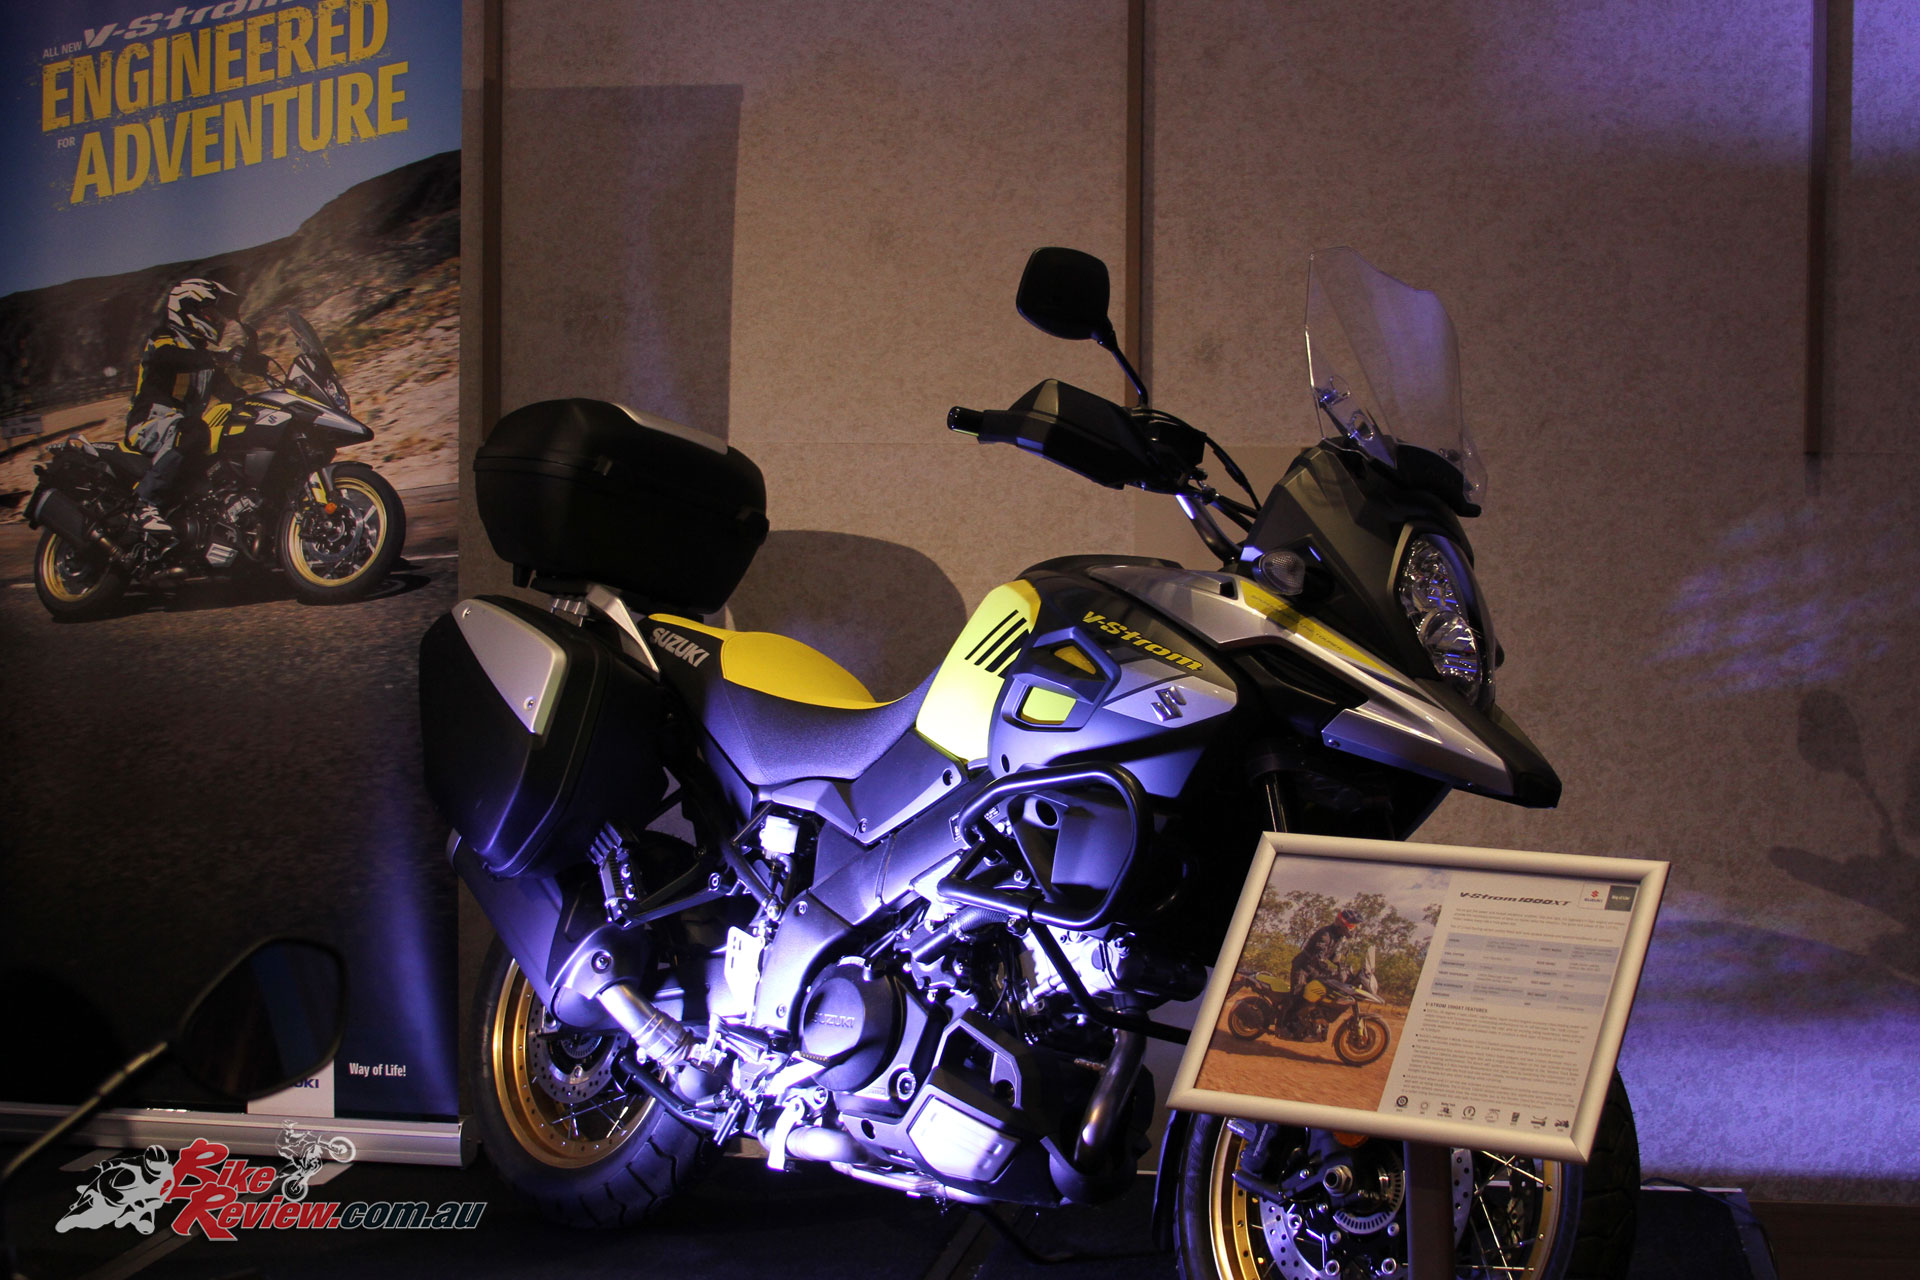 The Suzuki V-Strom 1000XT